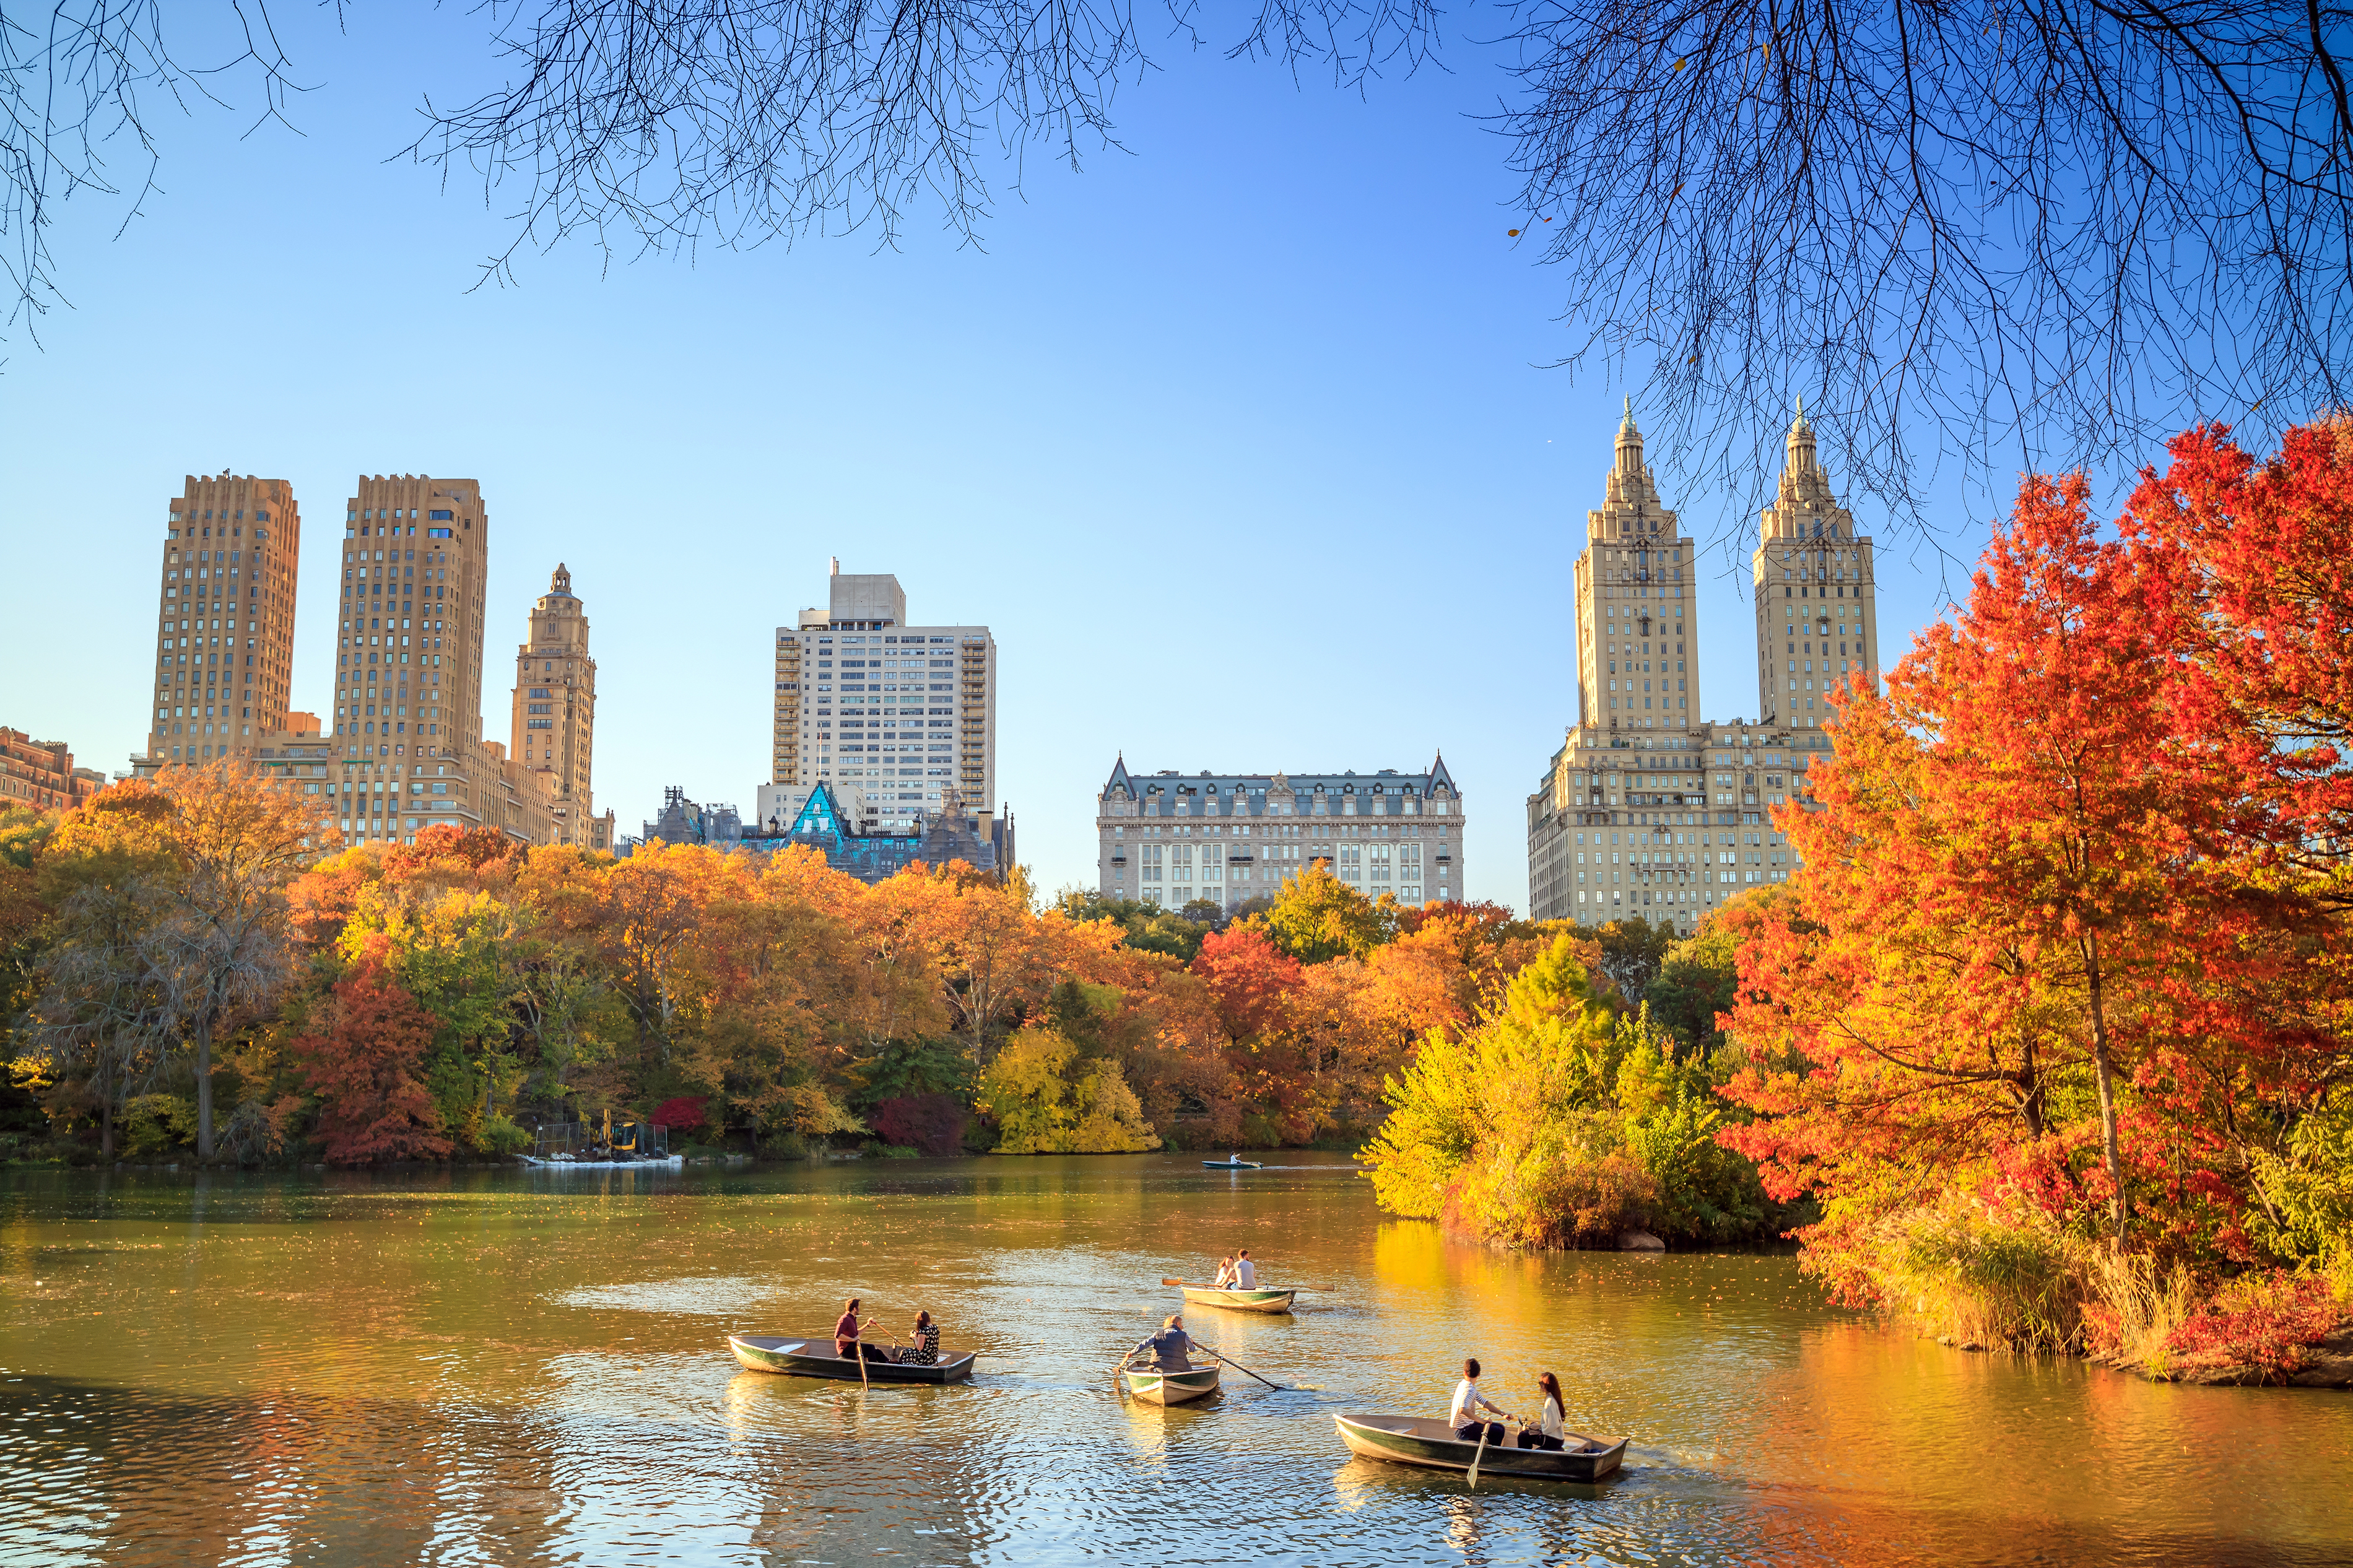 Where to see fall foliage in NYC